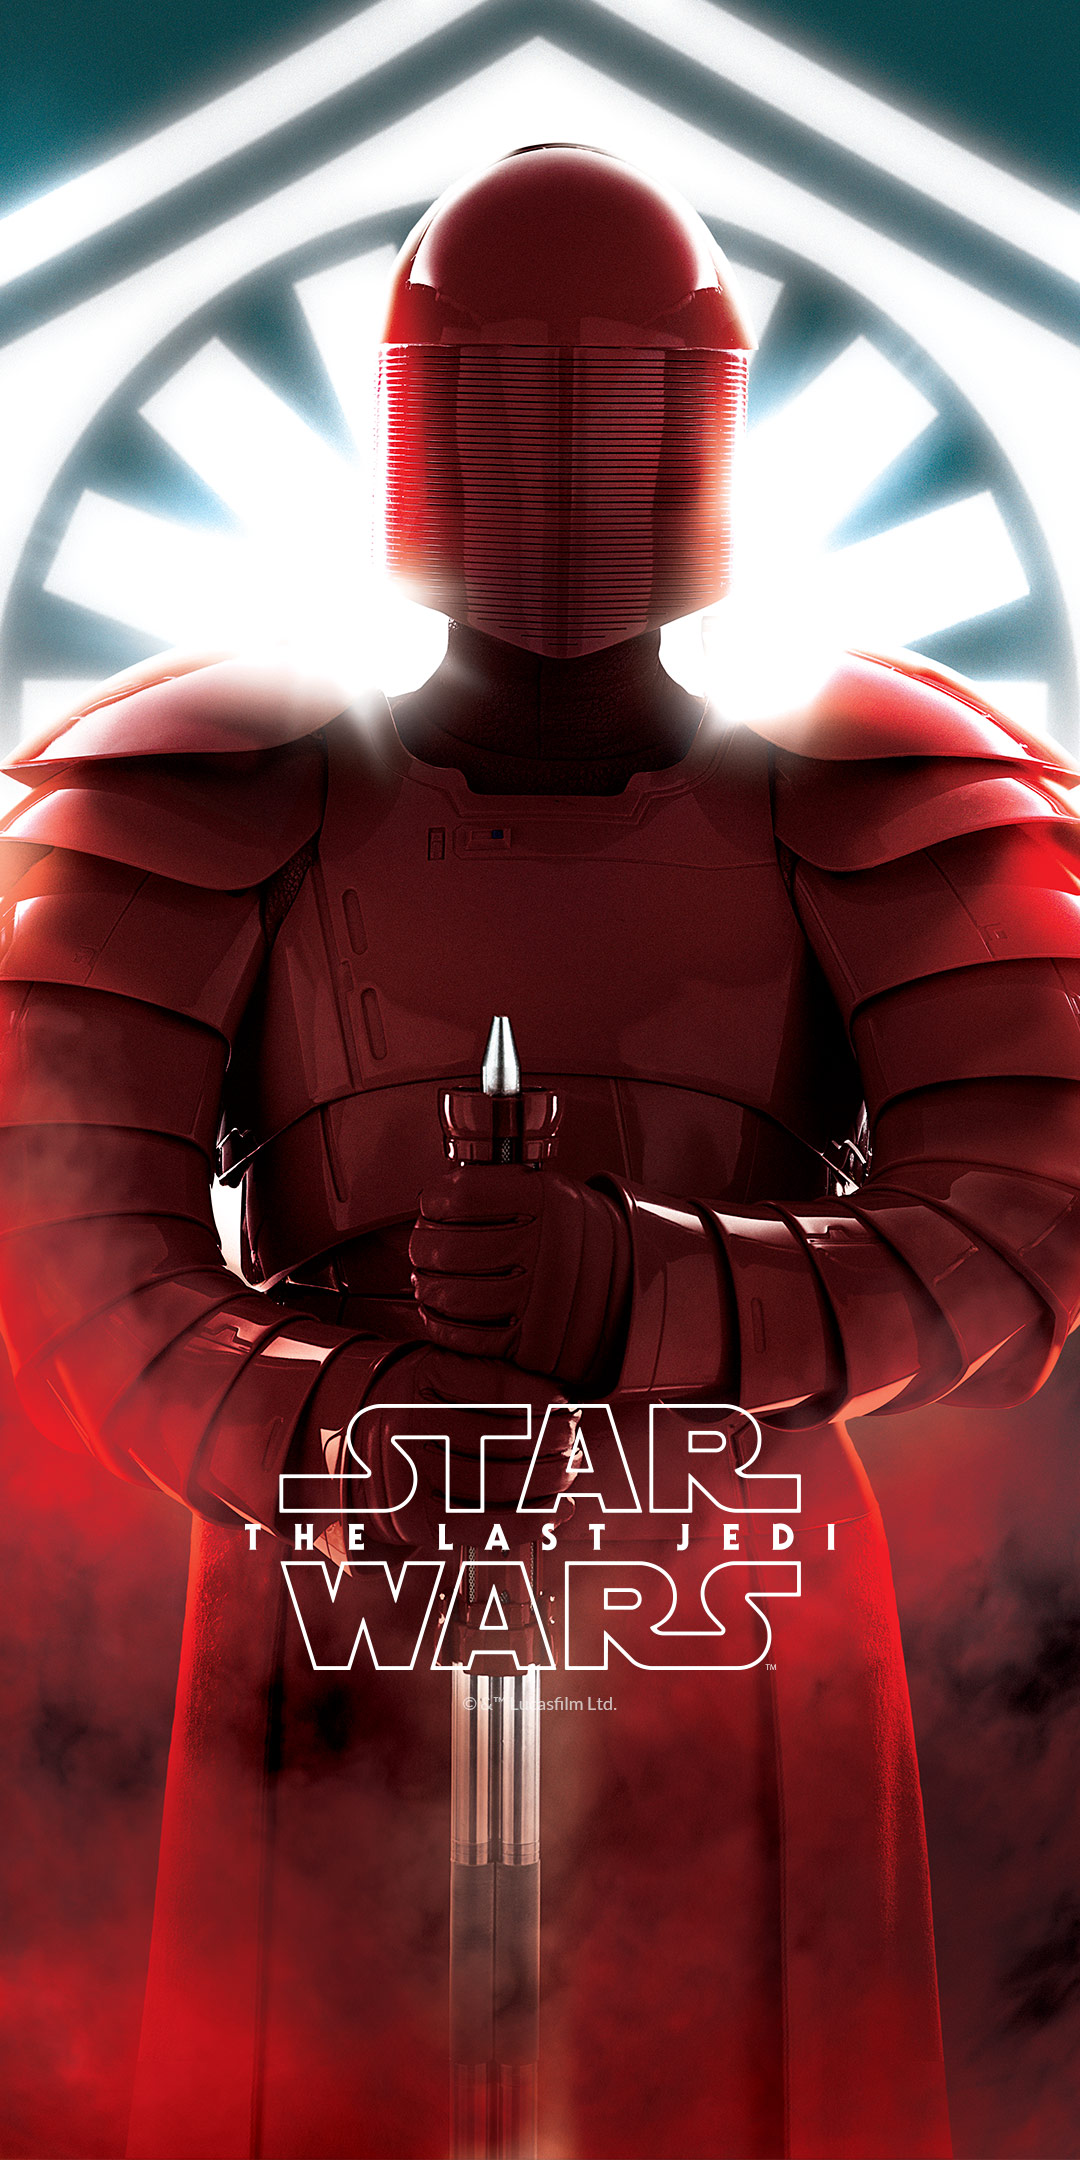 Get All The Star Wars The Last Jedi Wallpapers From The Special Edition Oneplus 5t Download Star Wars Wallpaper Star Wars Poster Star Wars Pictures